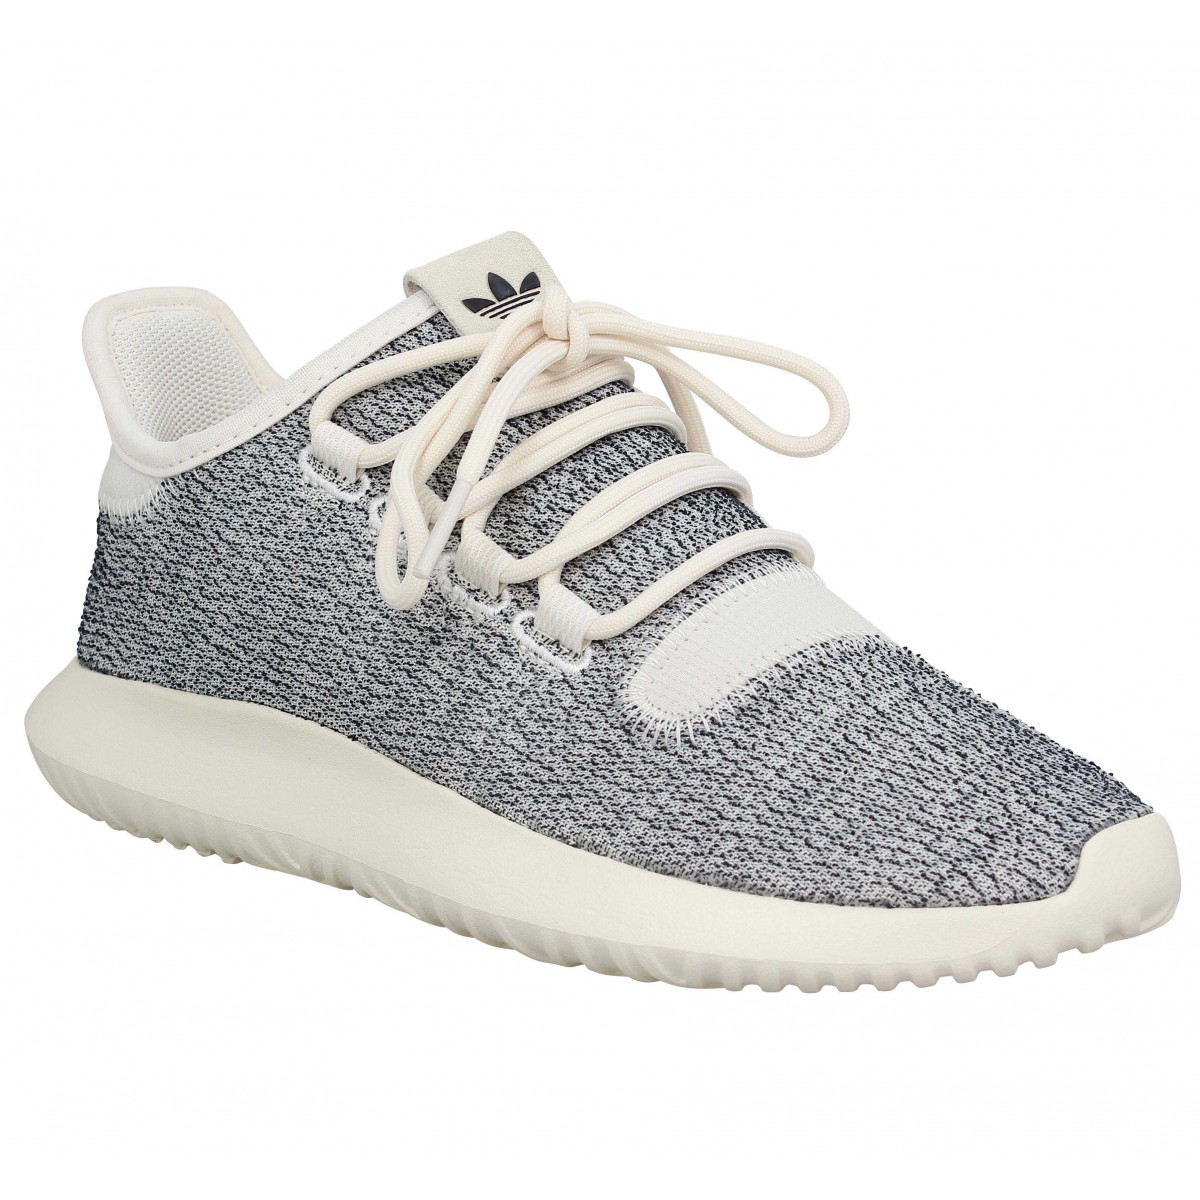 new style 6c7d8 7e503 Baskets ADIDAS Tubular Shadow toile Femme Blanc Casse